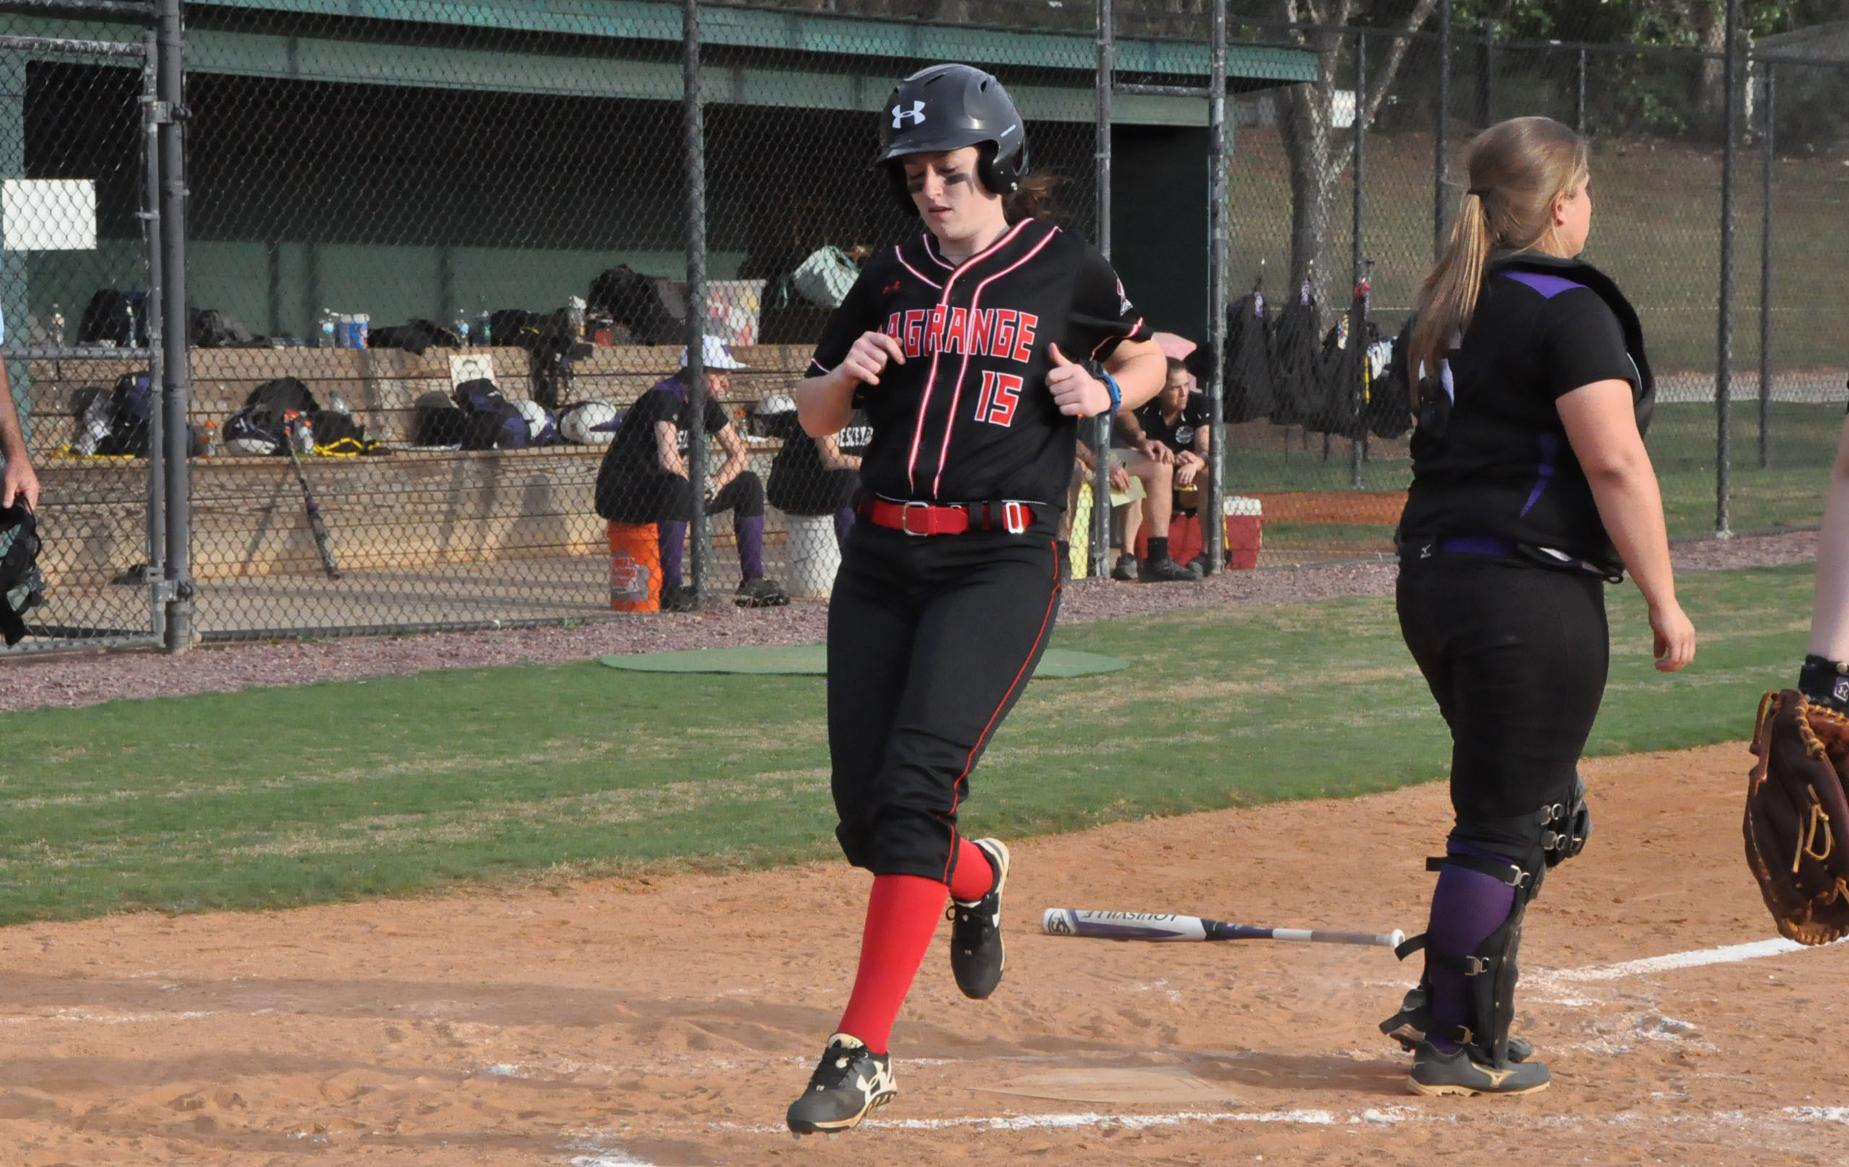 Softball: Panthers score combined 27 runs in sweeping Agnes Scott